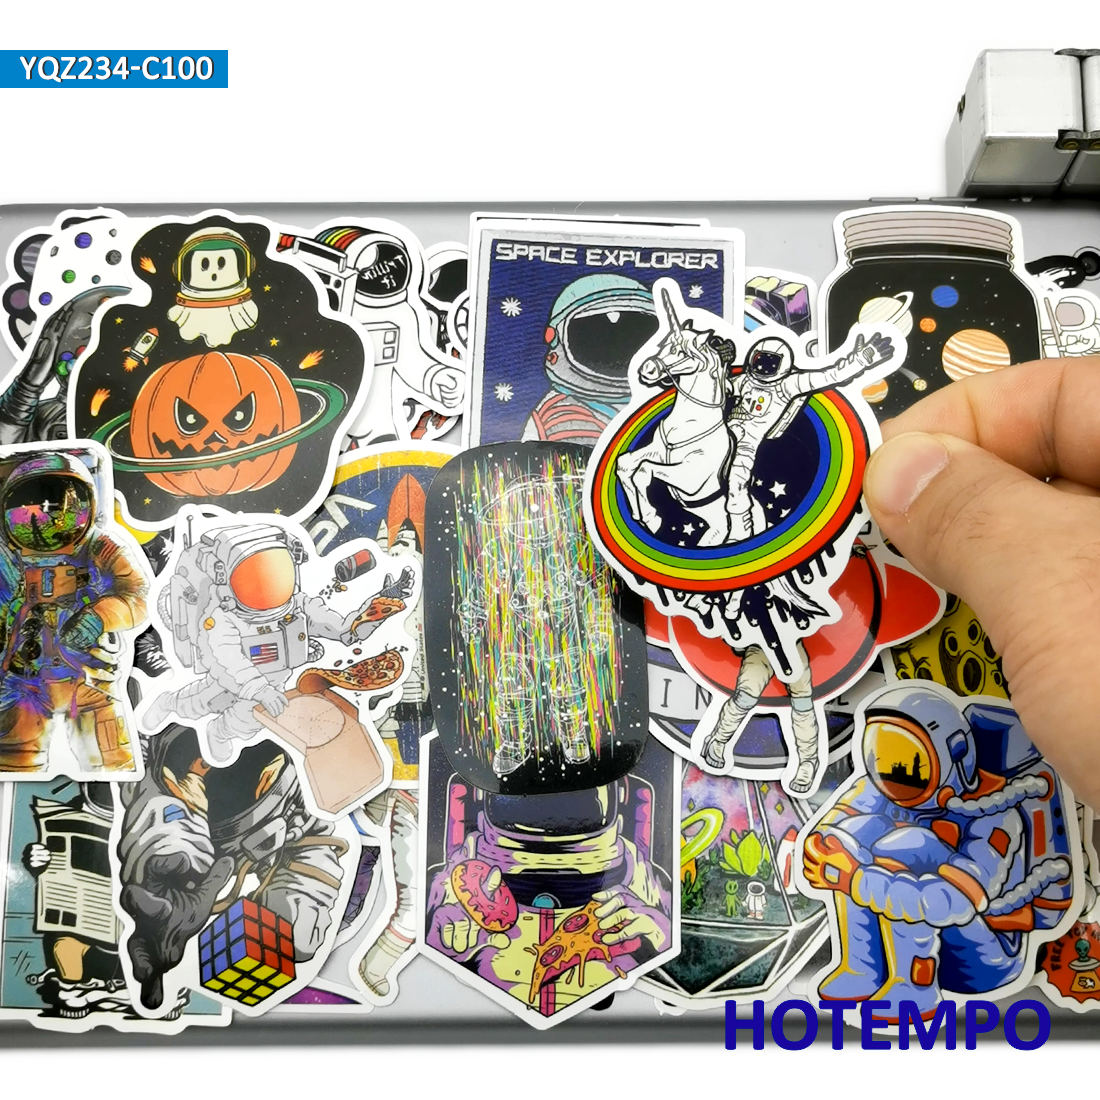 100pcs Astronaut Outer Space Alien Spaceship Funny Mixed Graffiti Waterproof Decals Stickers Pack Toy for Kids DIY Phone Laptop